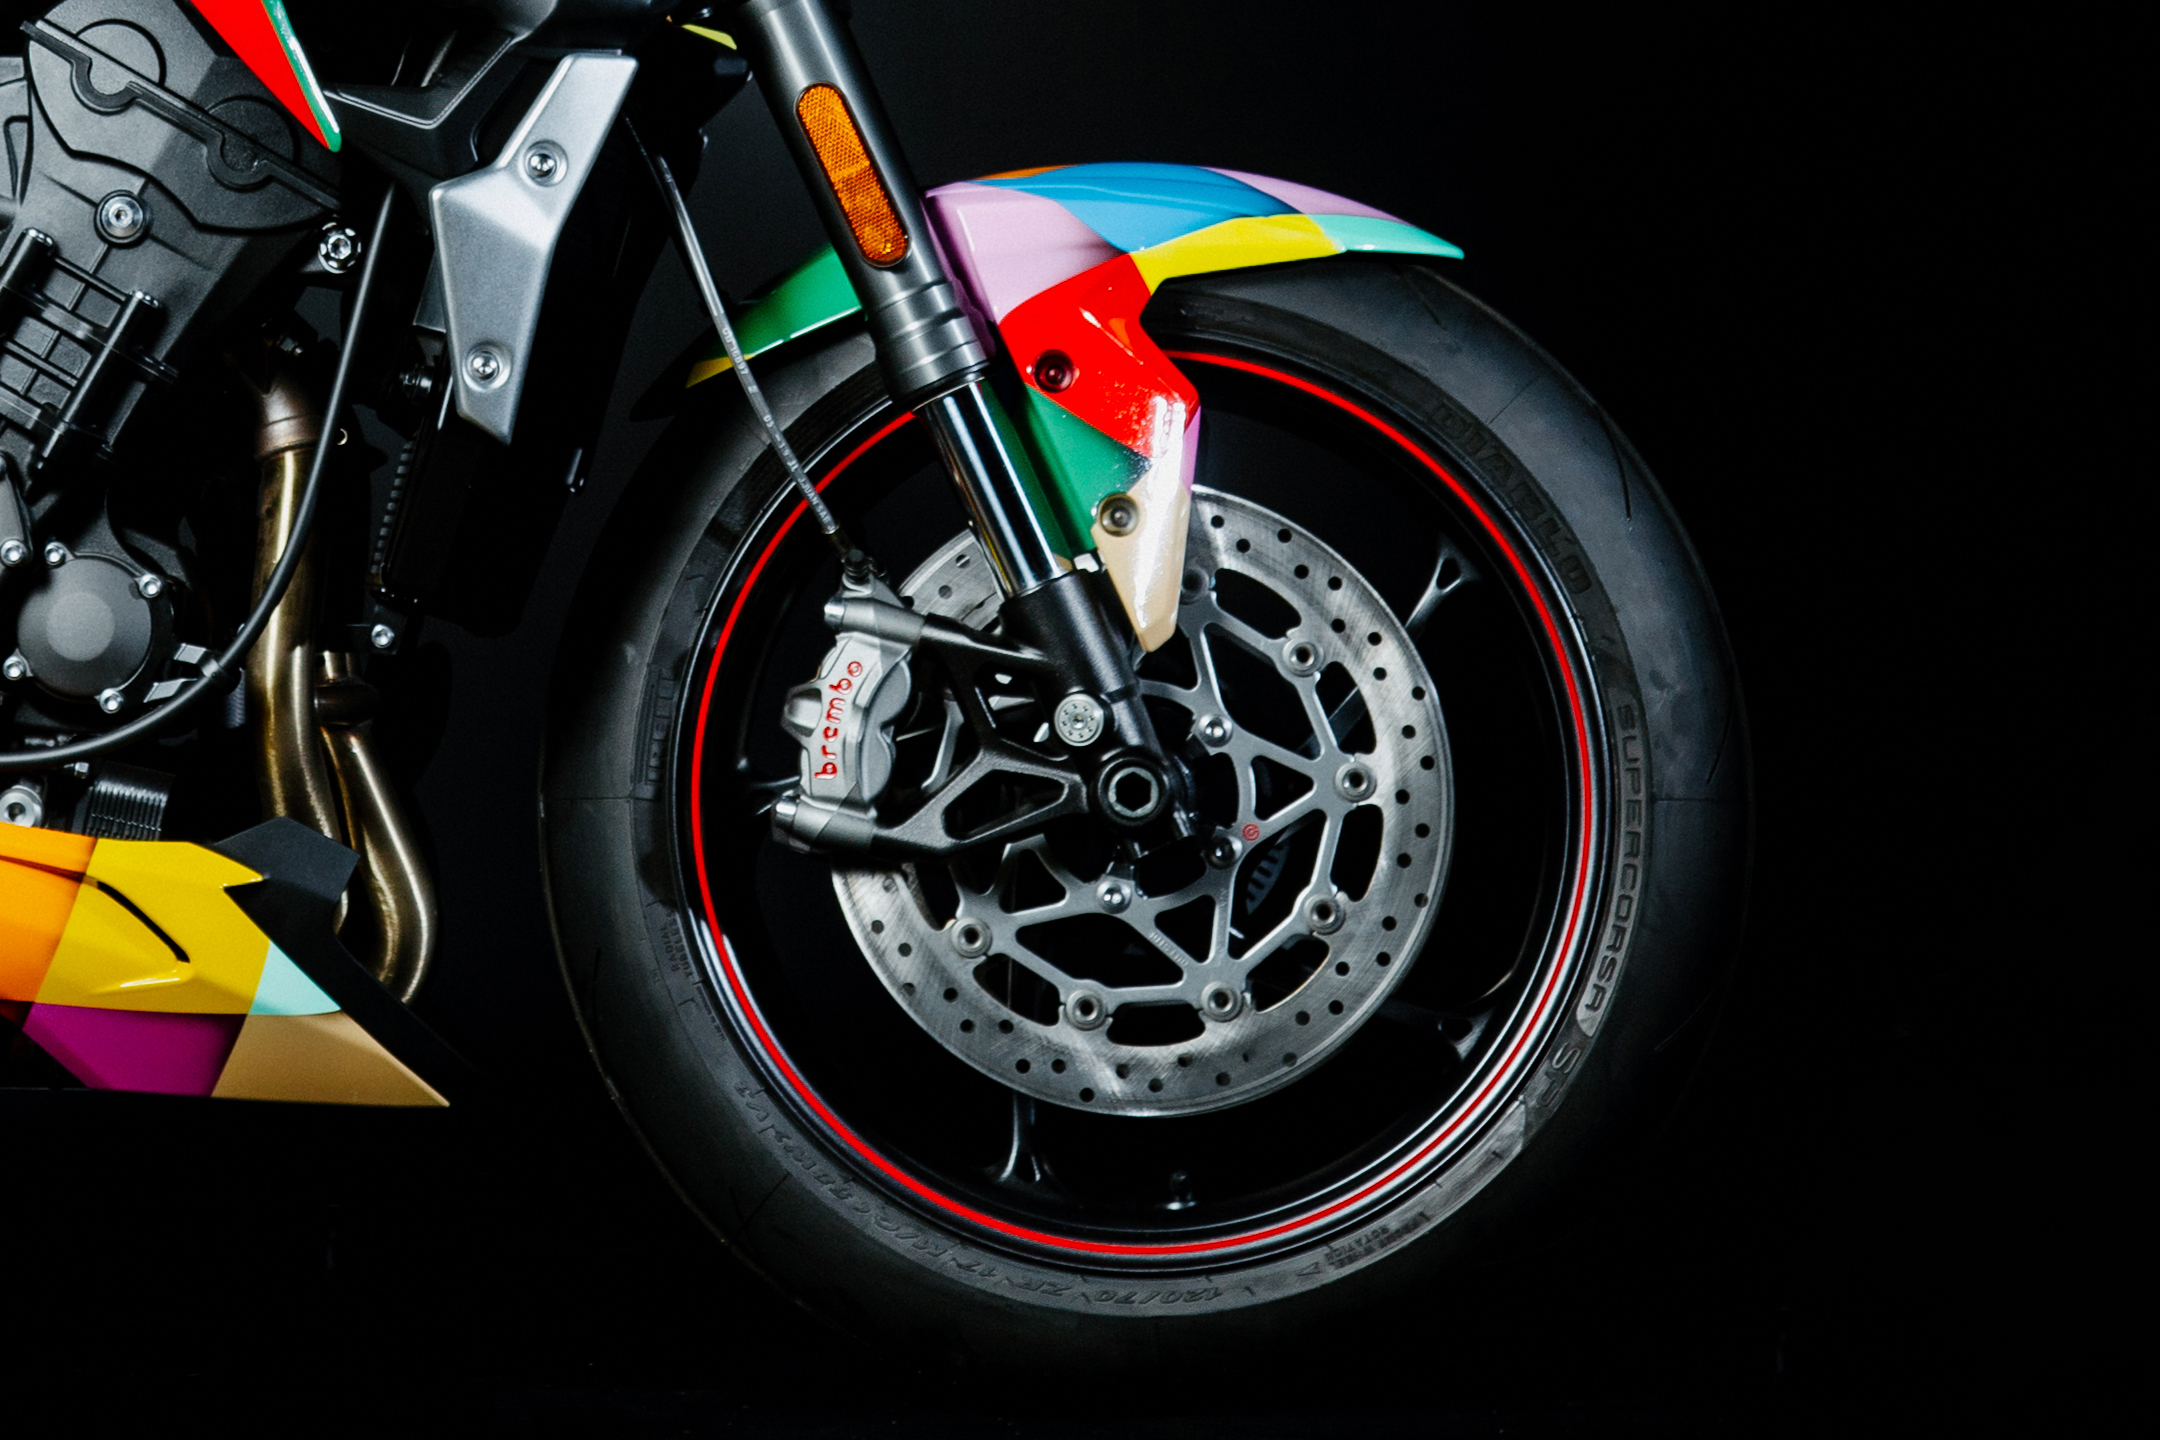 Birds of Prey Triumph Street Triple RS - 2020 - front wheel - Brembo brakes disc